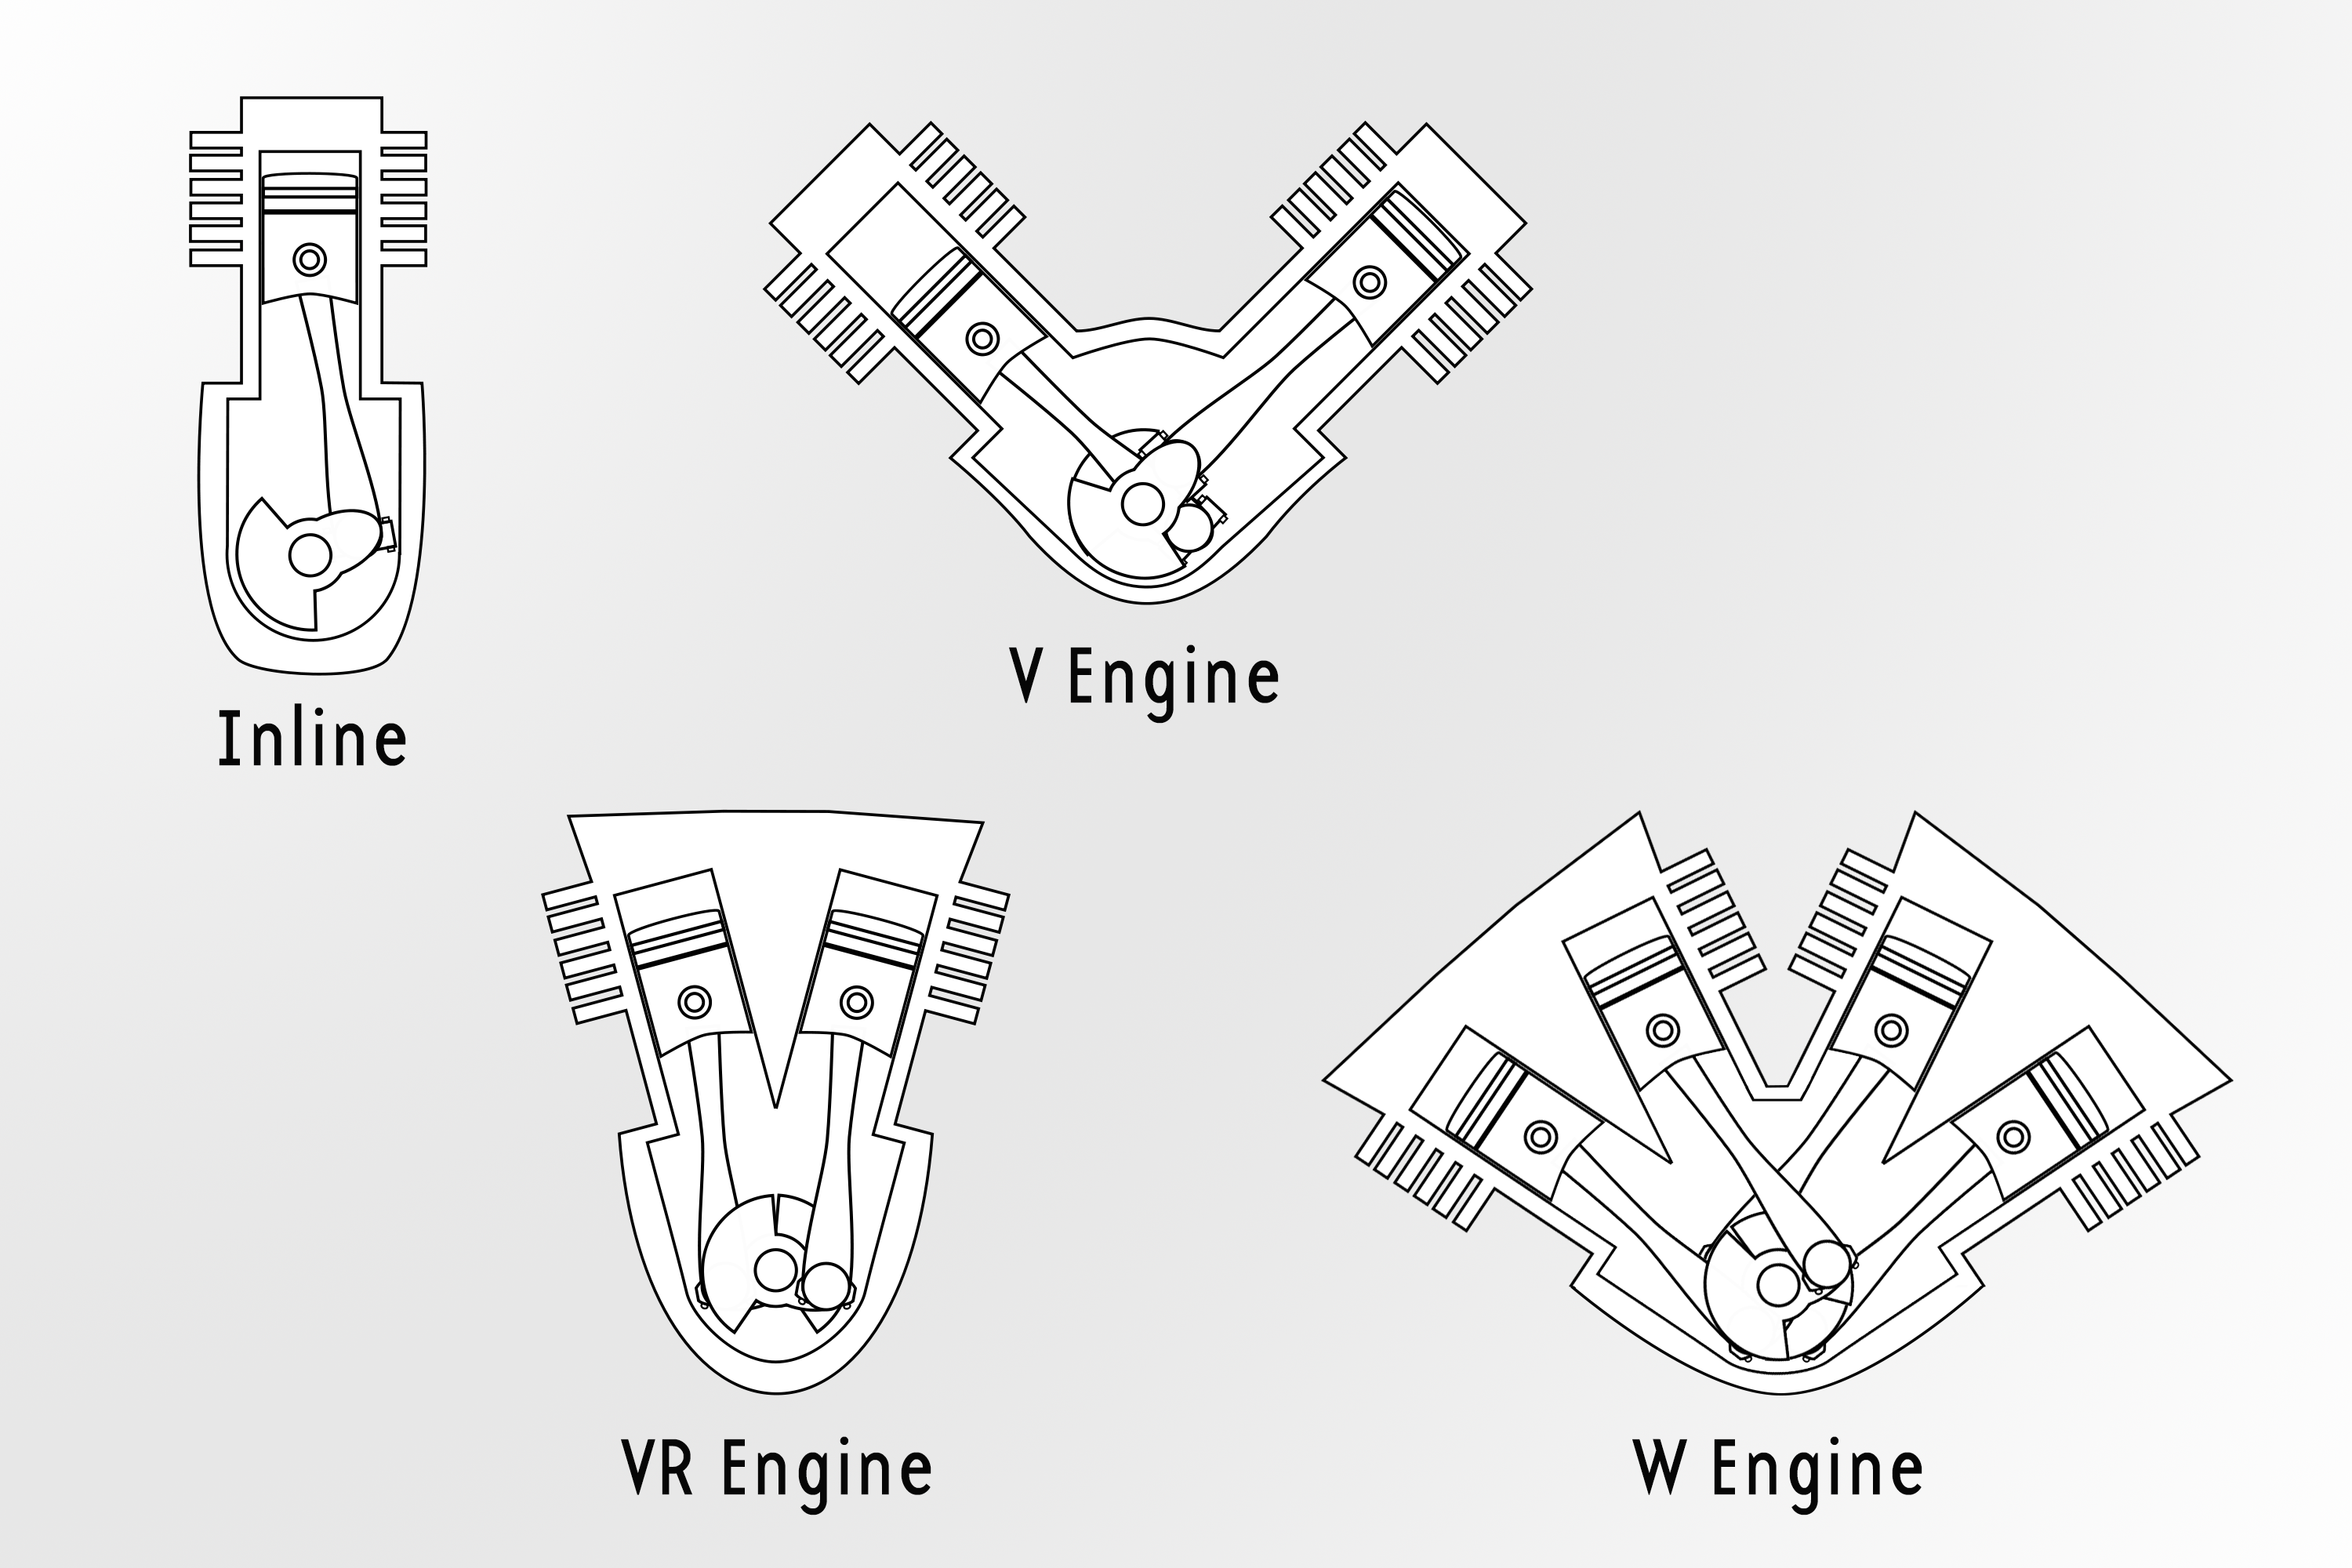 bugatti w engine diagram data diagram schematic 2013 bugatti veyron engine diagram [ 3000 x 2000 Pixel ]